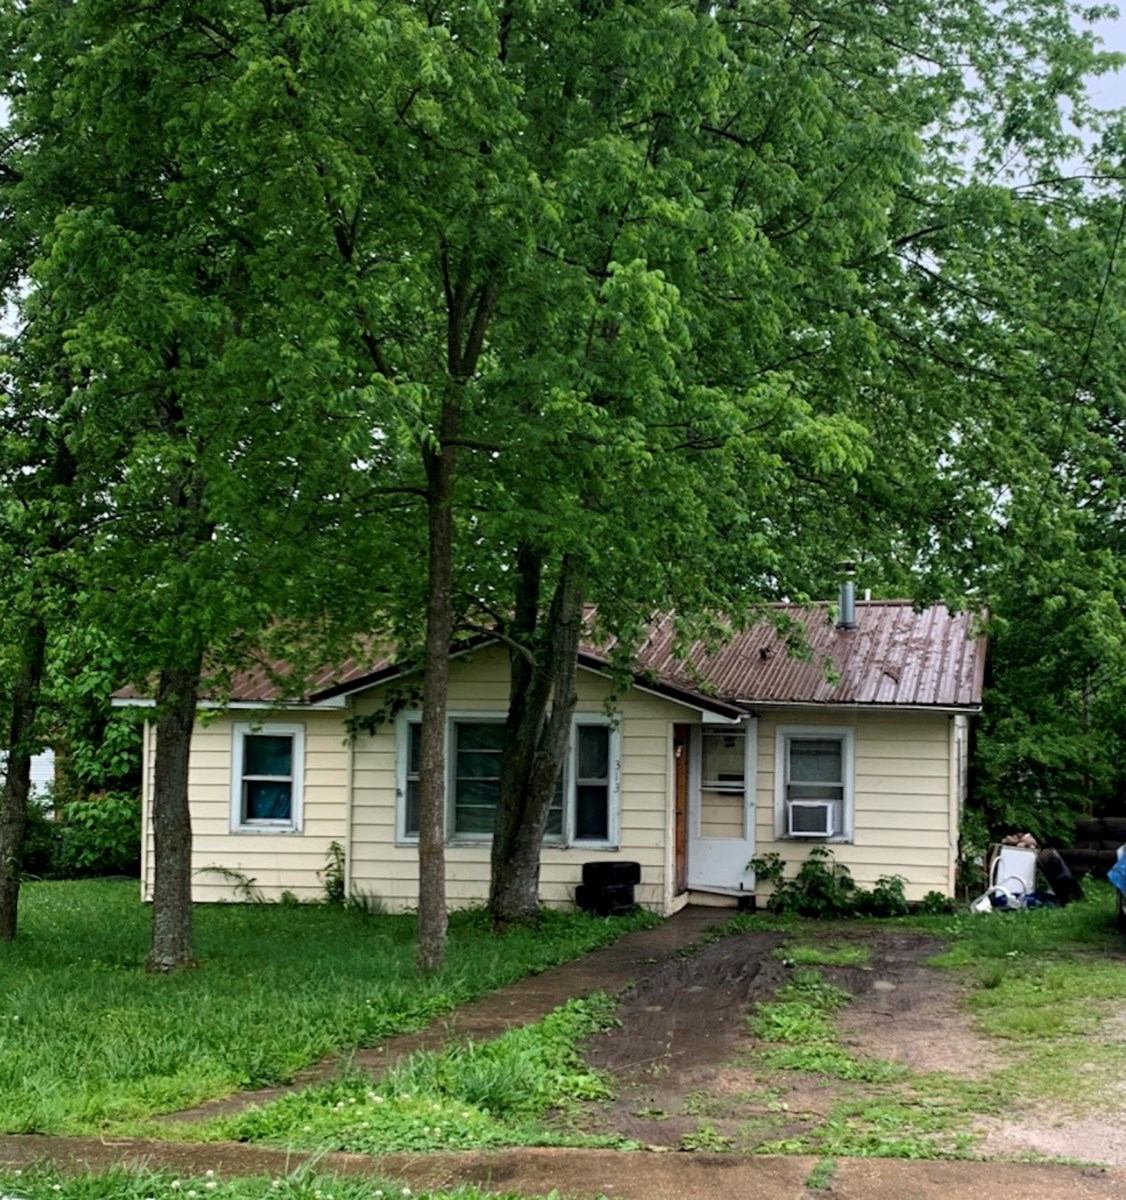 Investment Property for Sale - House in Mountain Grove, MO!